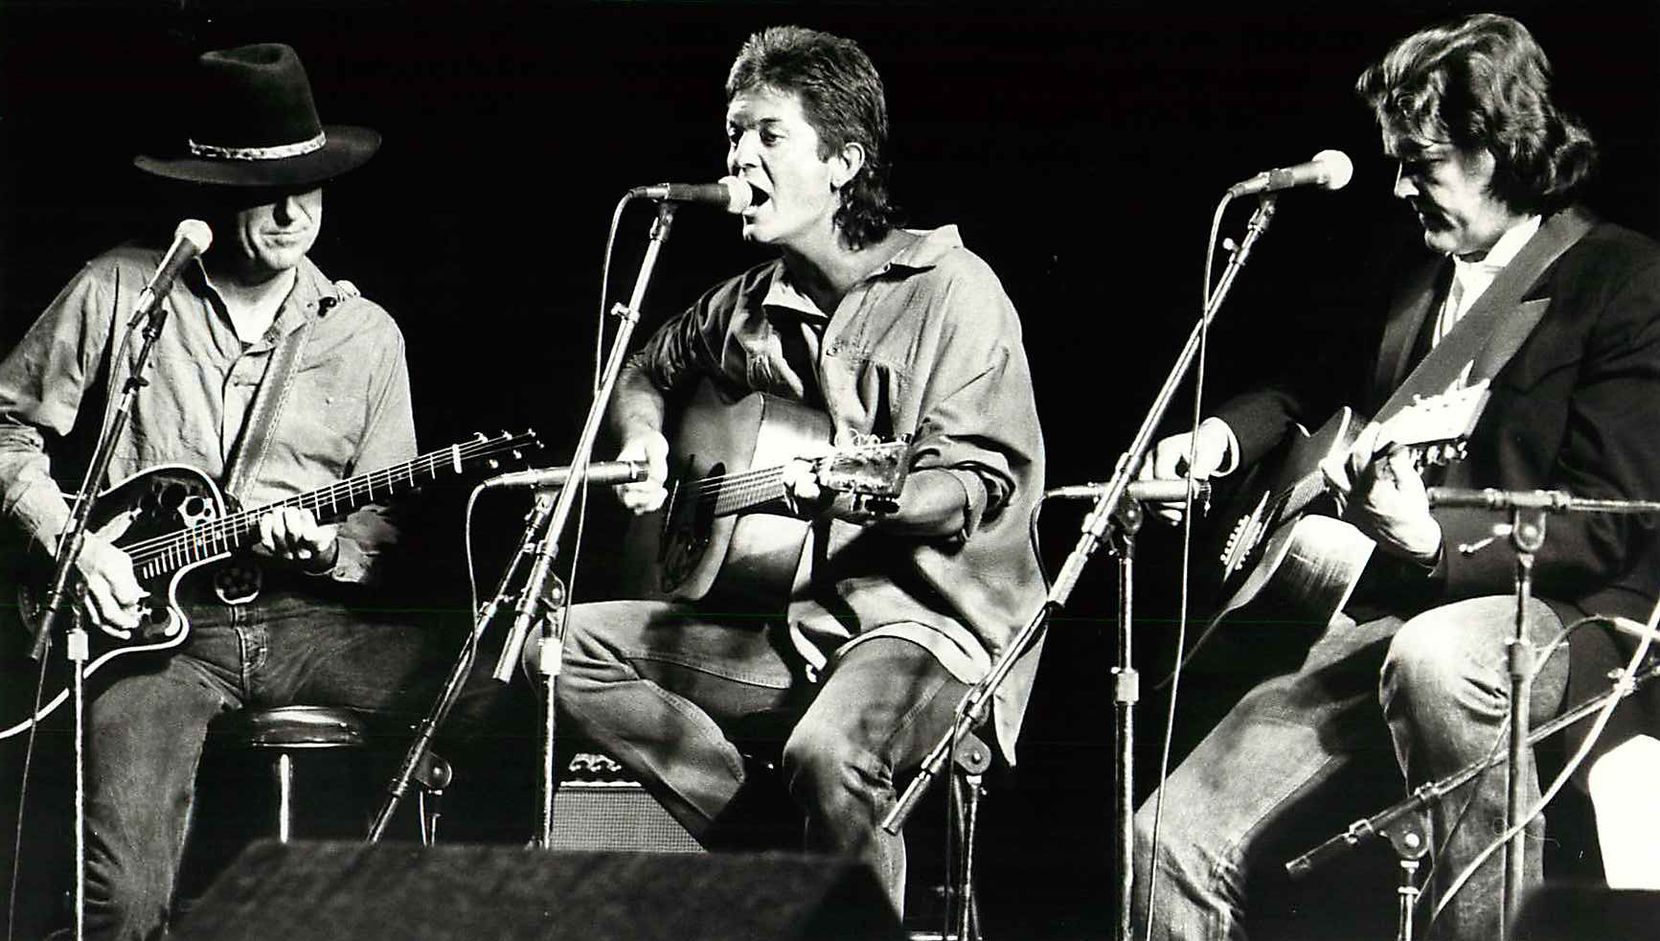 From left, Jerry Jeff Walker, Rodney Crowell and Guy Clark perform at the Arcadia Theater in Dallas on April 5, 1985.